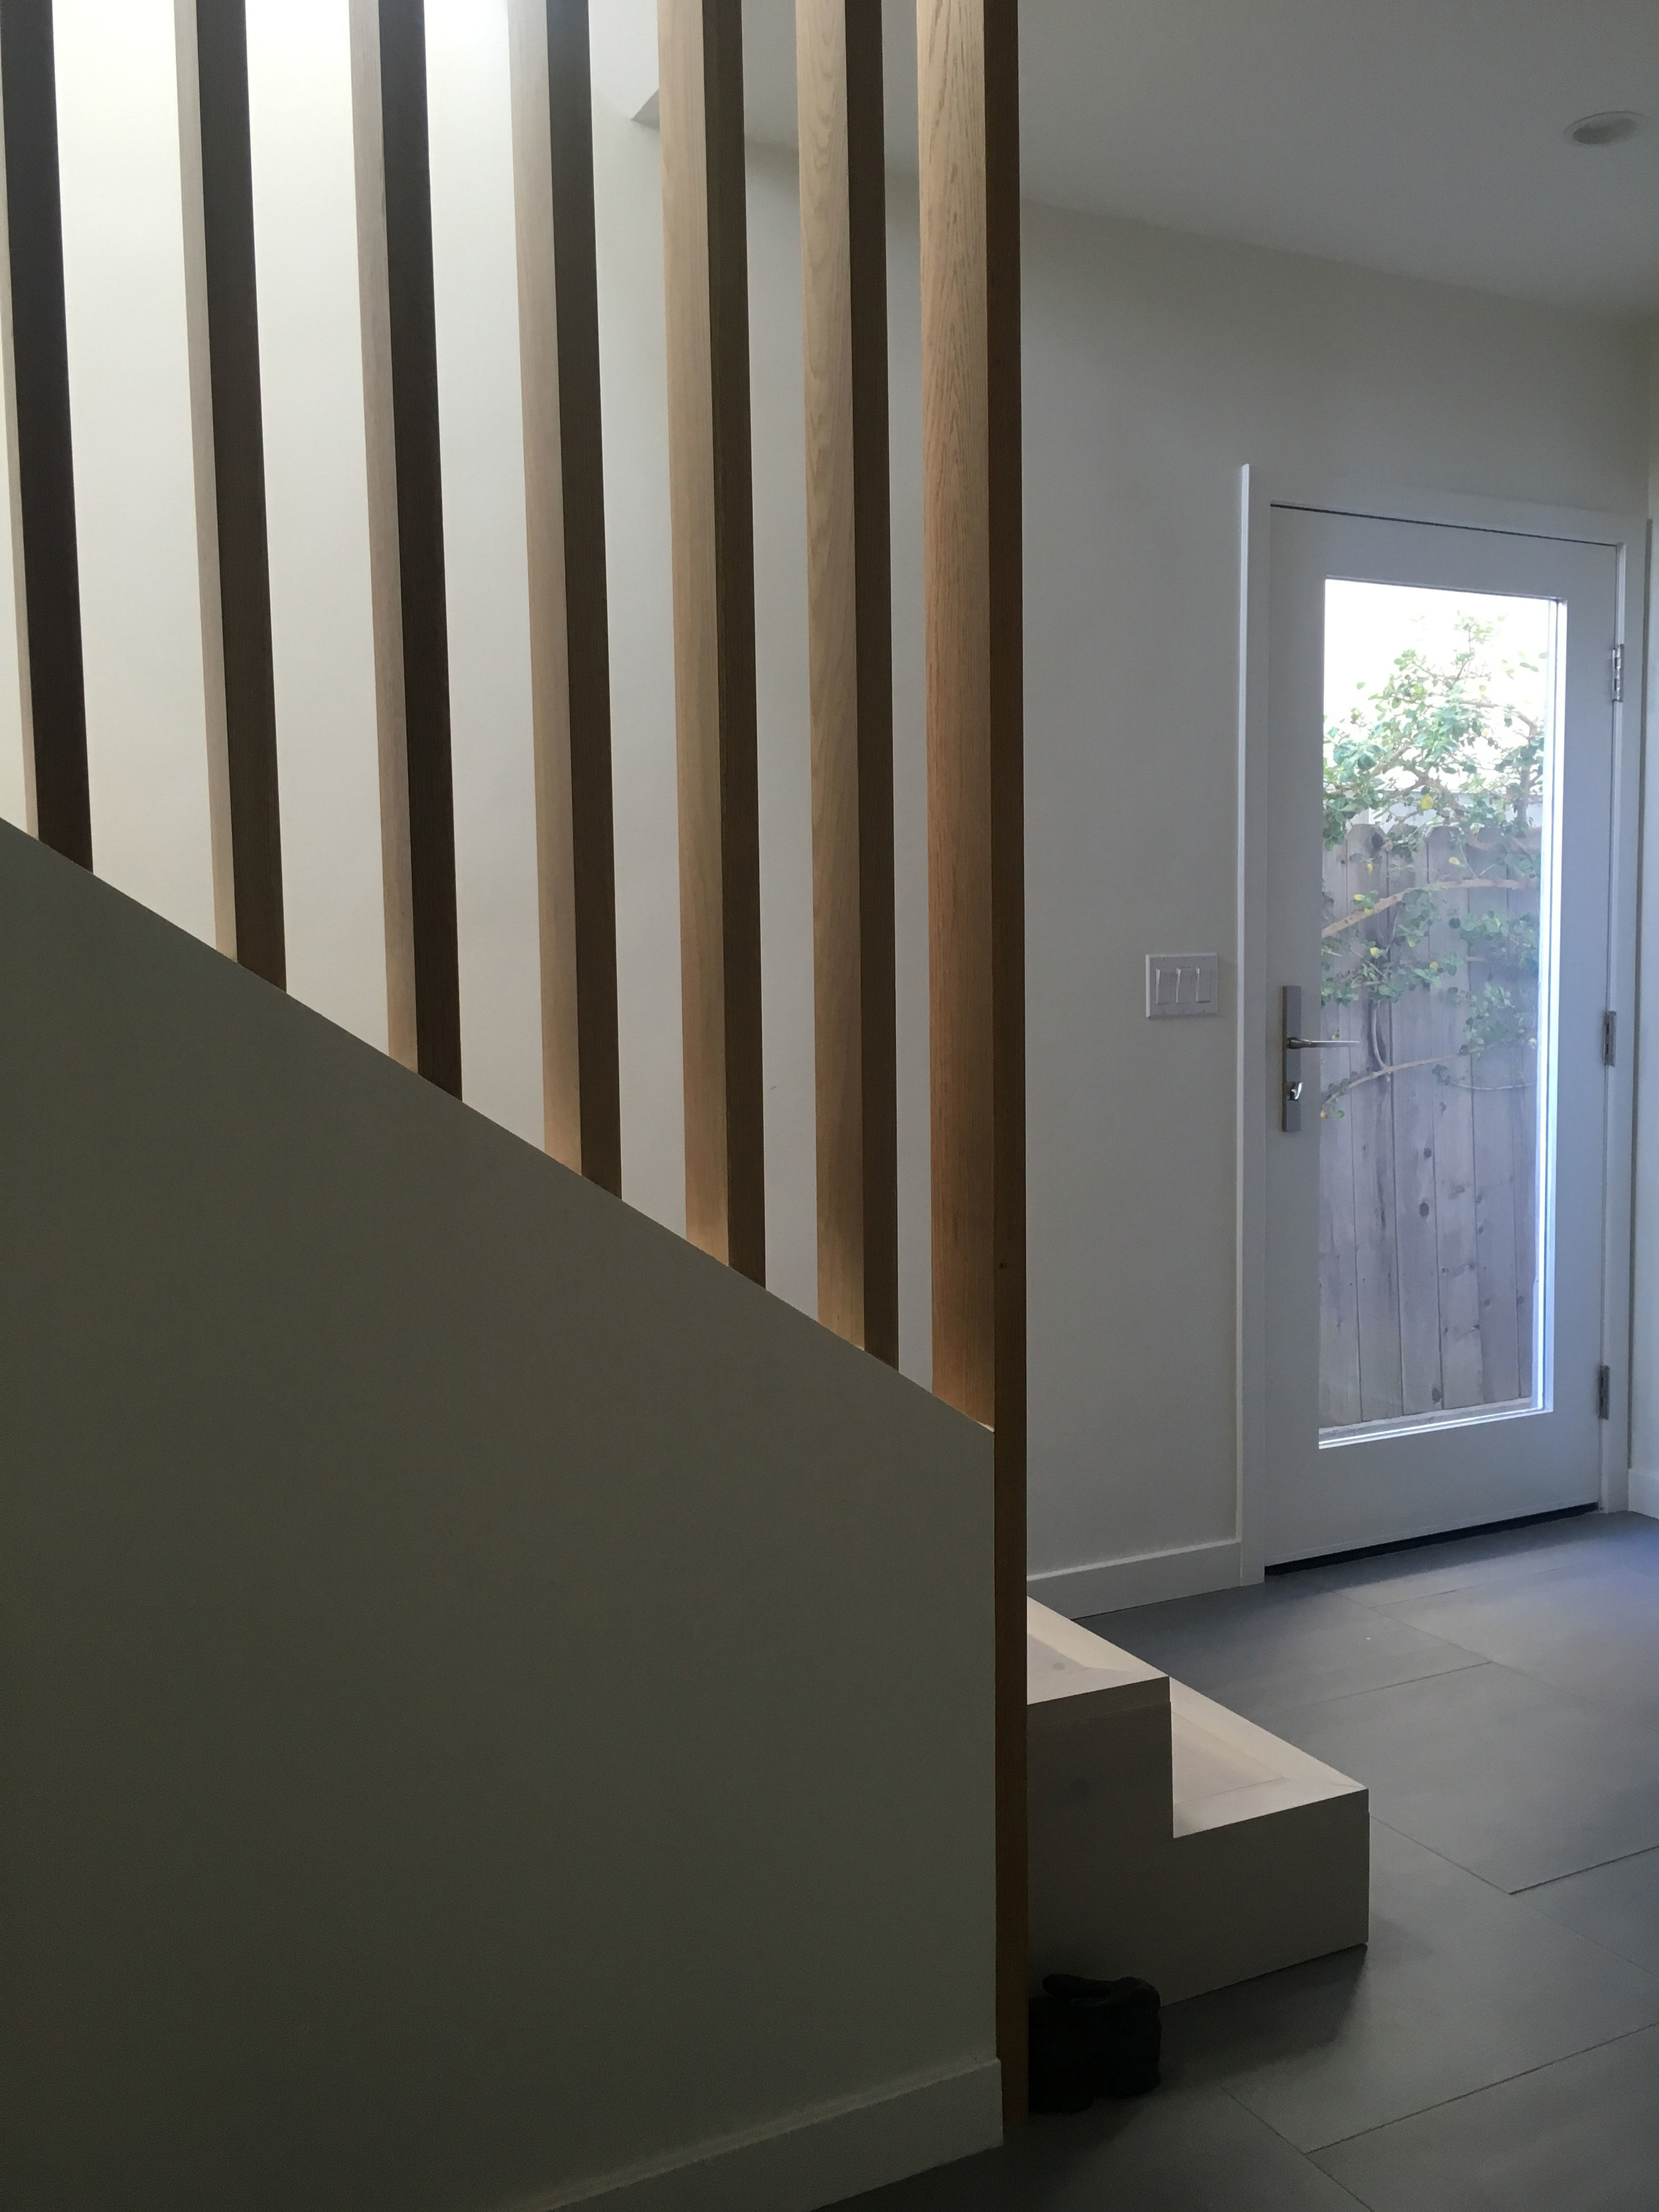 A superfluous staircase post was removed and ceilings were raised to 10 ft. to create a more spacious and comfortable entry.